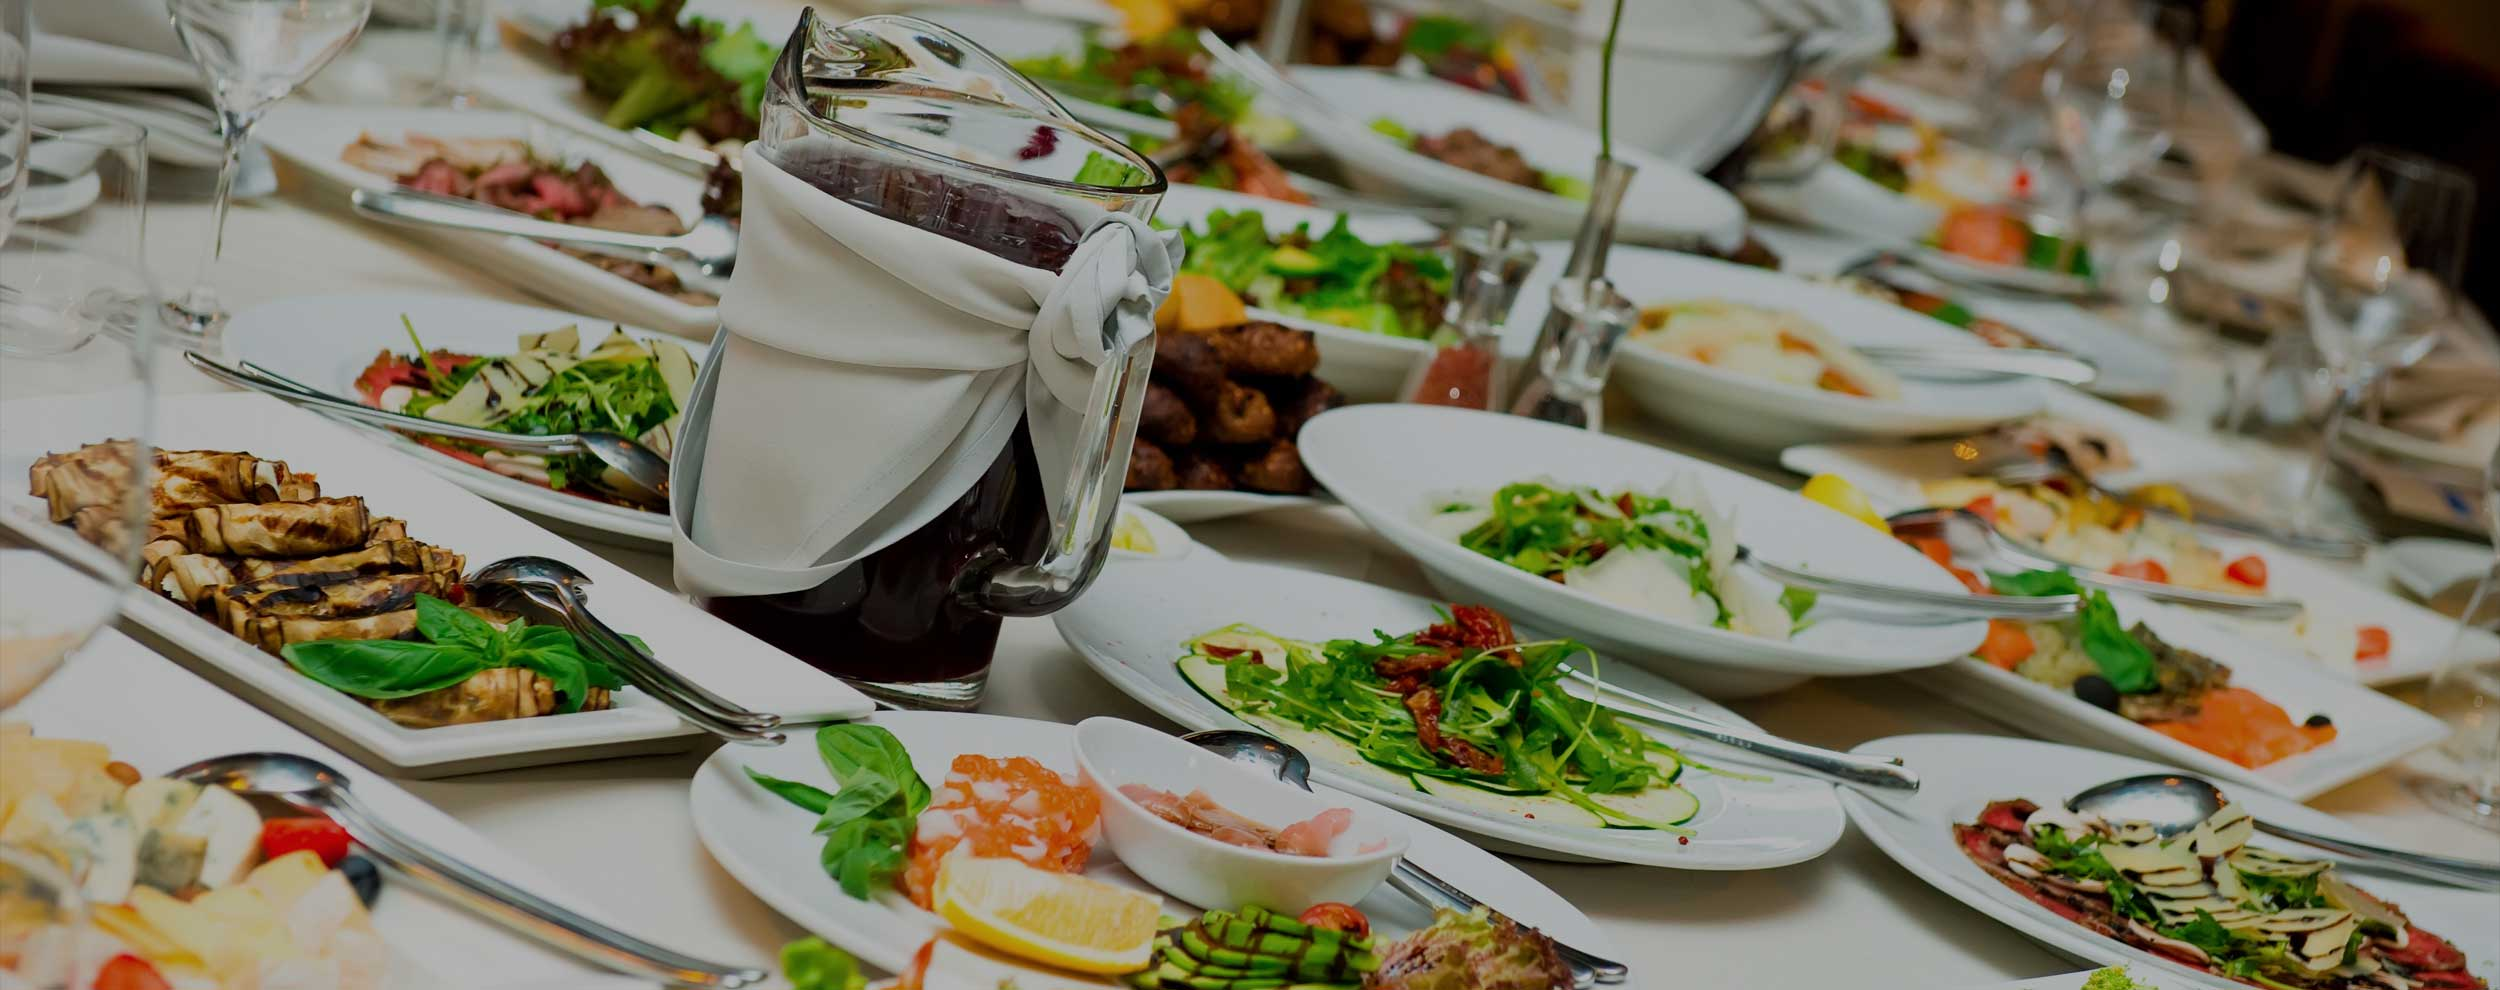 Find the best catering services in your area